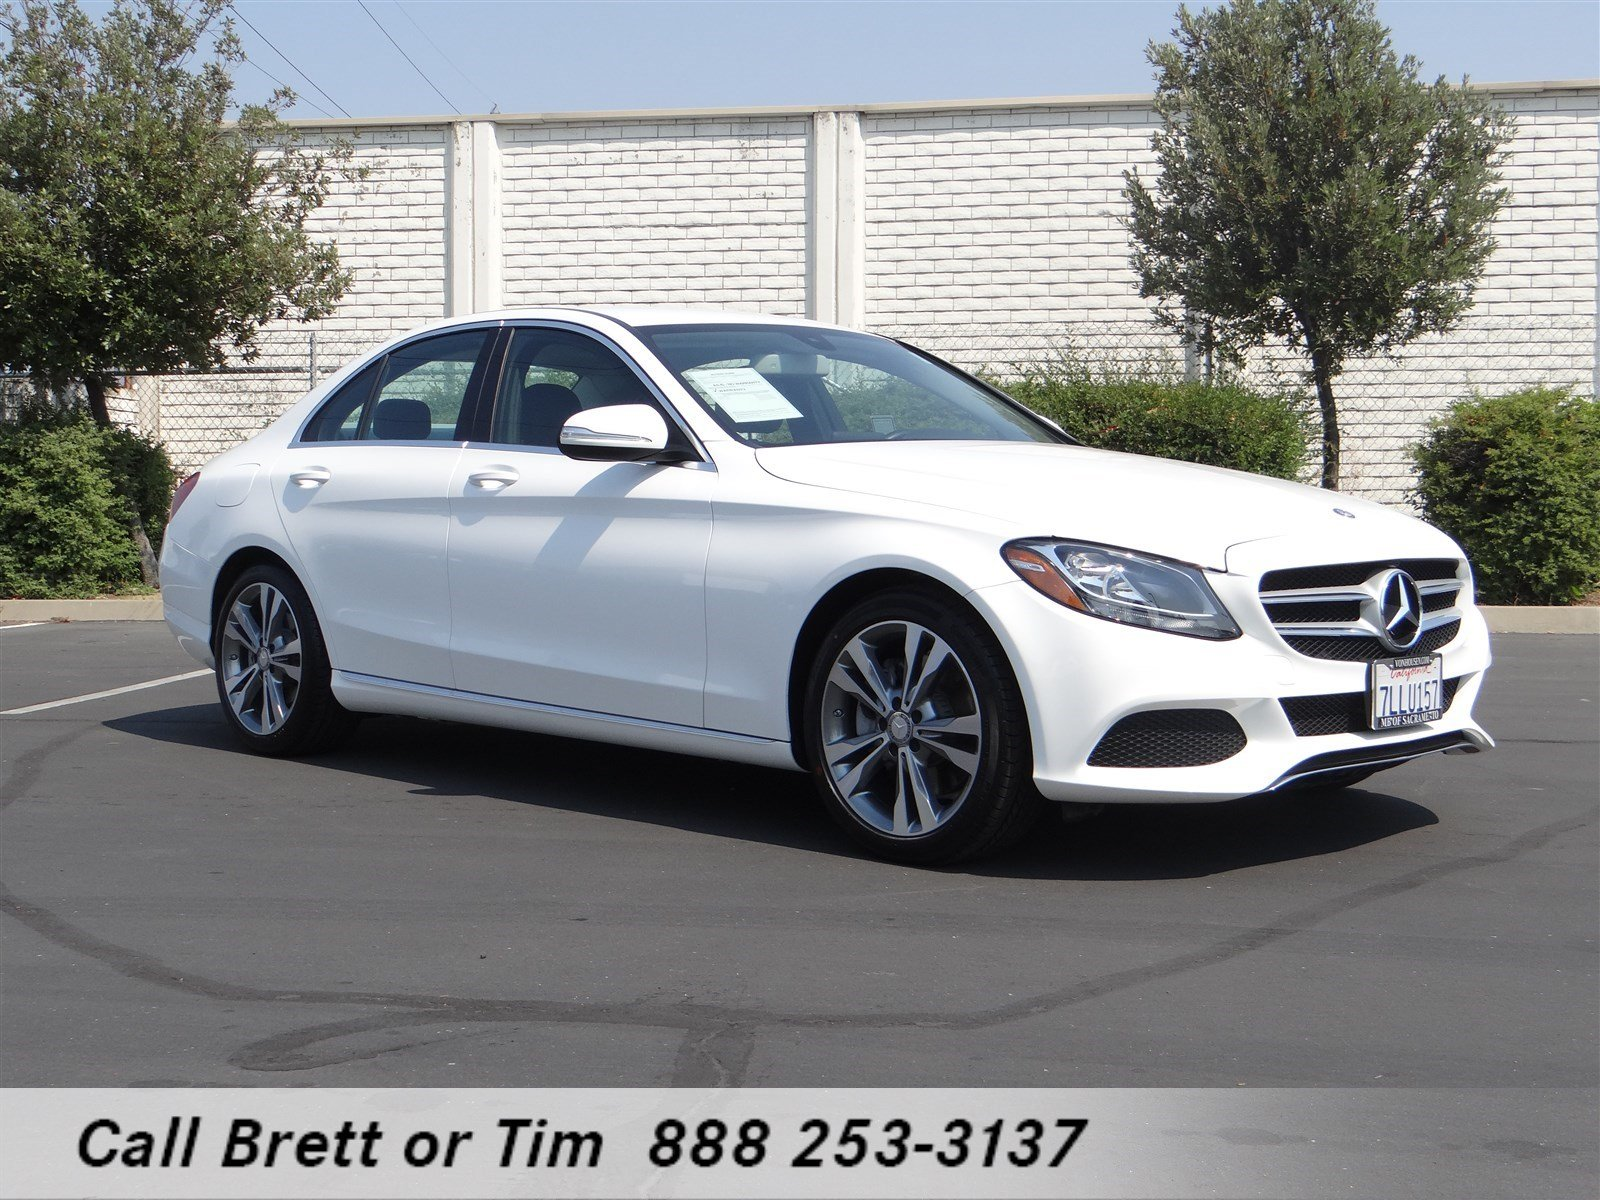 Certified pre owned 2015 mercedes benz c class 4dr car in for Mercedes benz c class pre owned